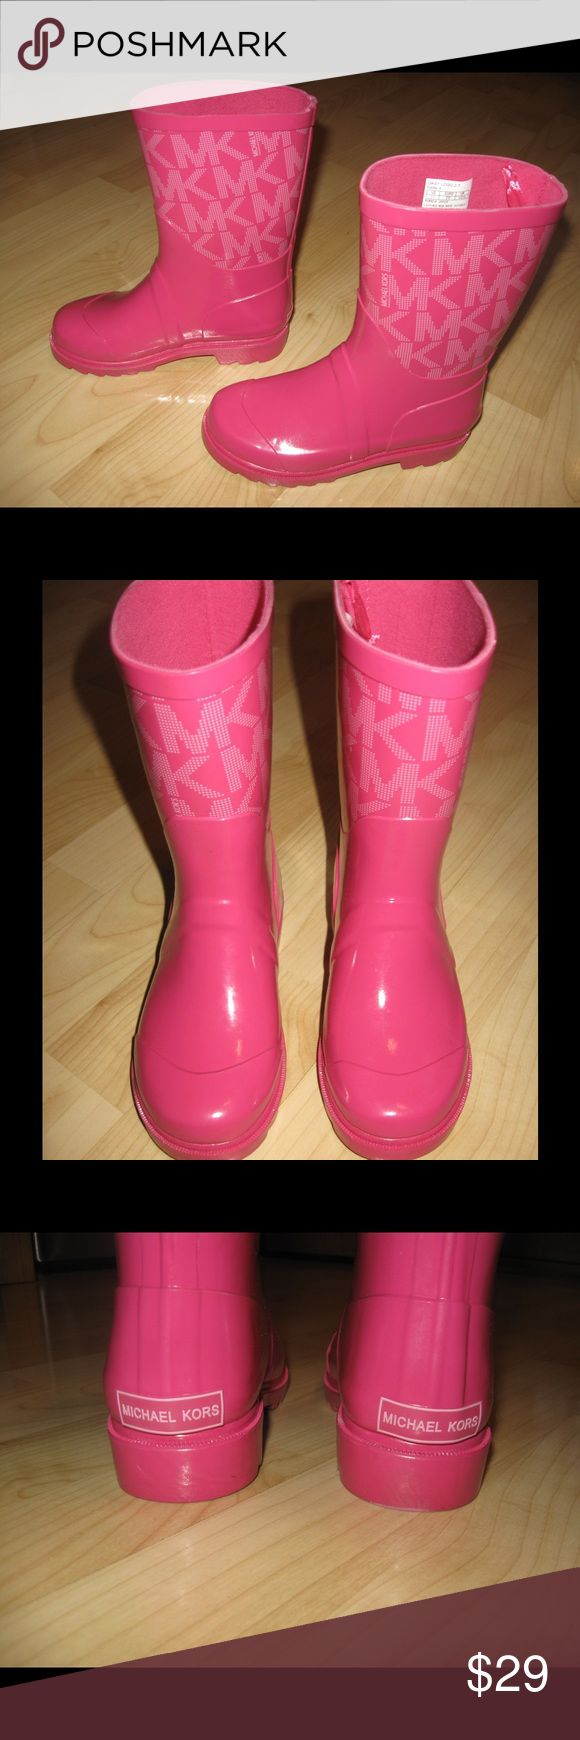 NWOB Michael Kors Daisy logo rain boots Girls MK logo pink rain boots. Never wore!                                                       Ask any questions! 🚫Trades 🚫Paypal ✅Bundles 🐶Pet free MICHAEL Michael Kors Shoes Boots